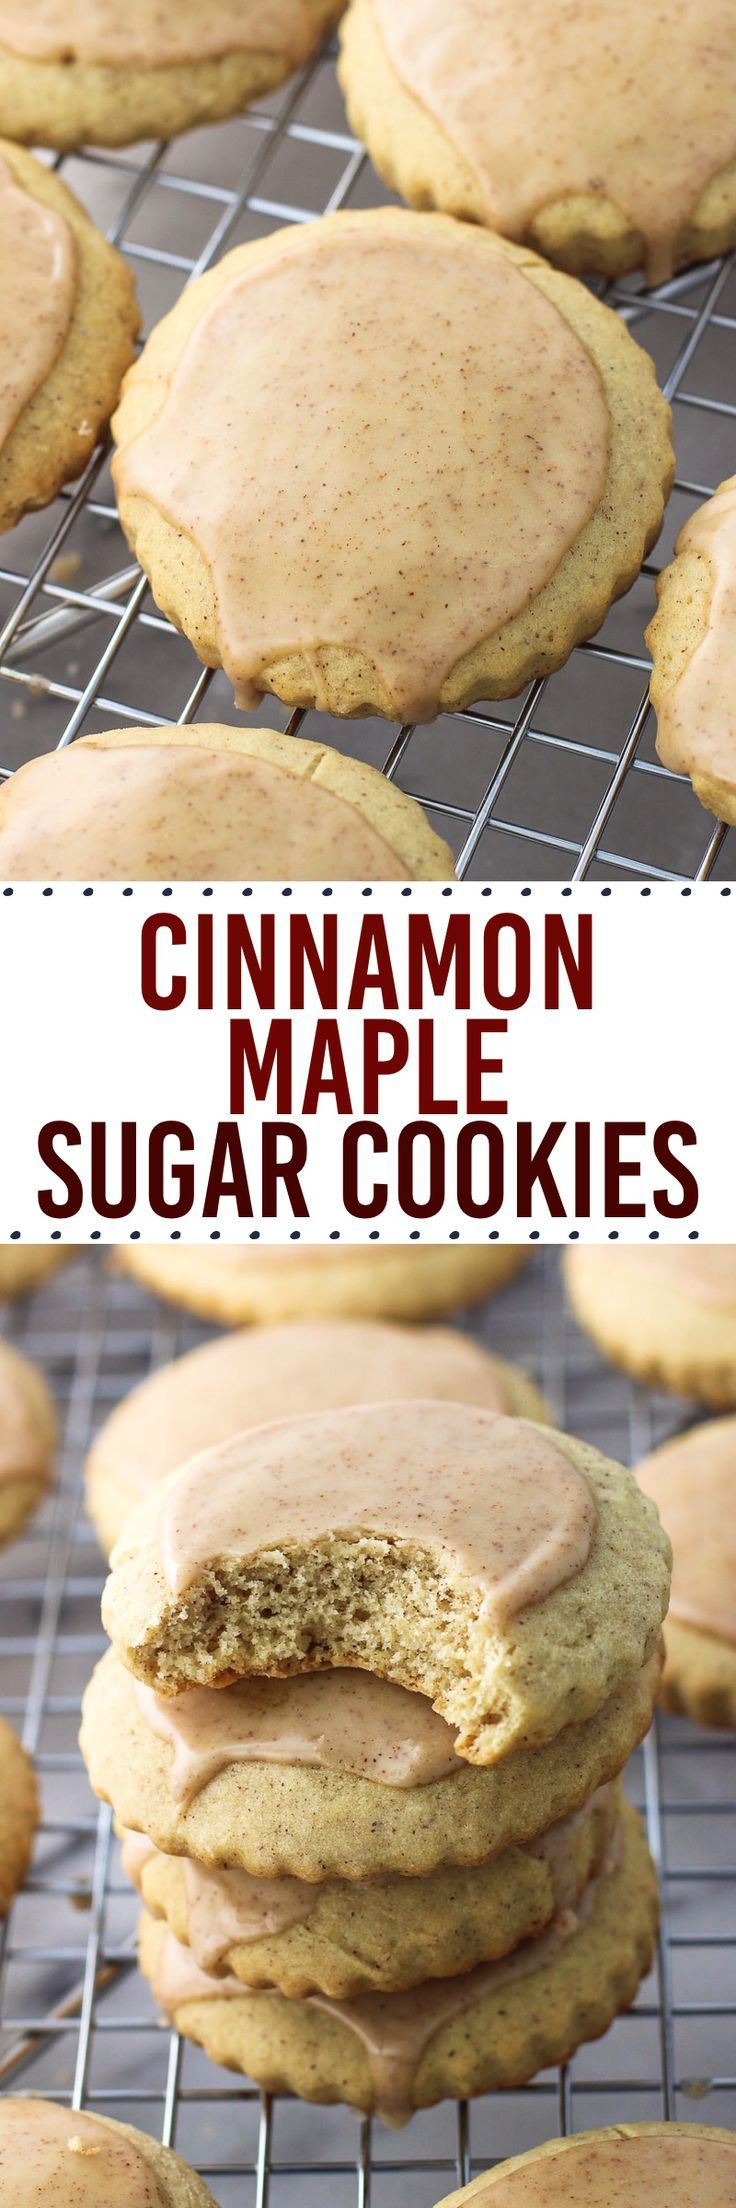 Cinnamon maple sugar cookies are tender and cinnamon-spiced, with a hint of maple